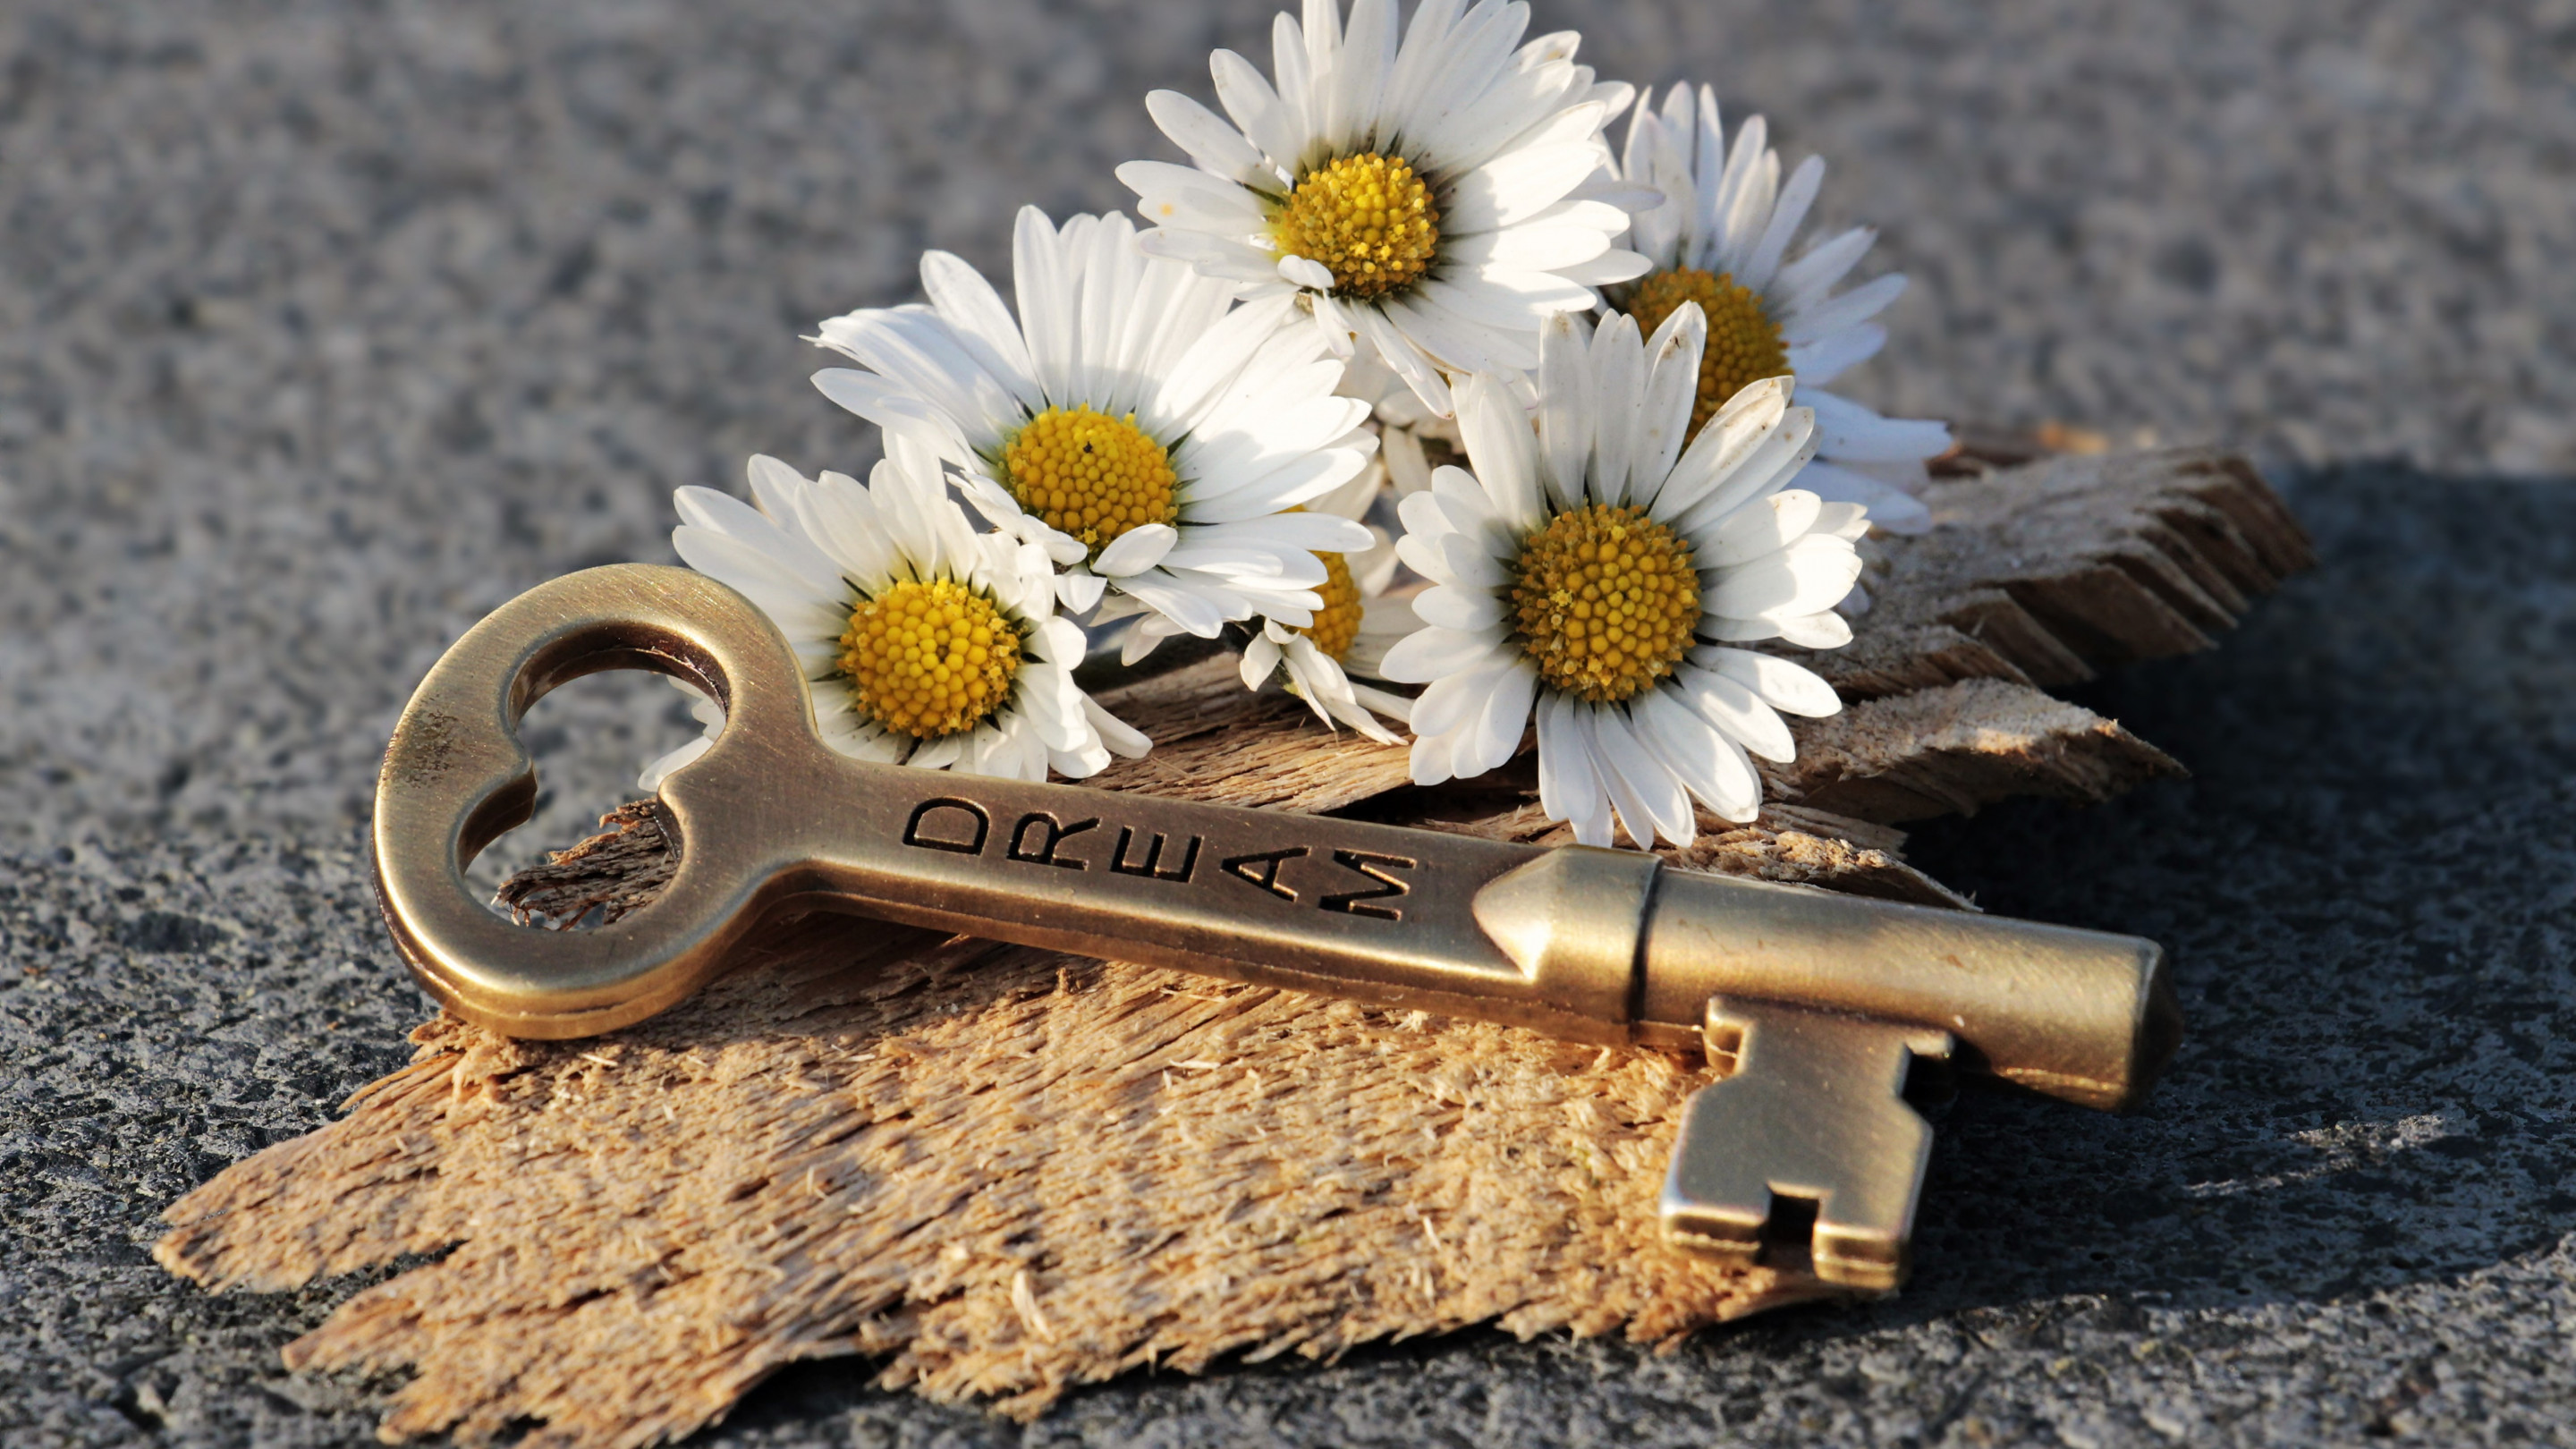 The dreams key and daisy flowers wallpaper 2880x1620